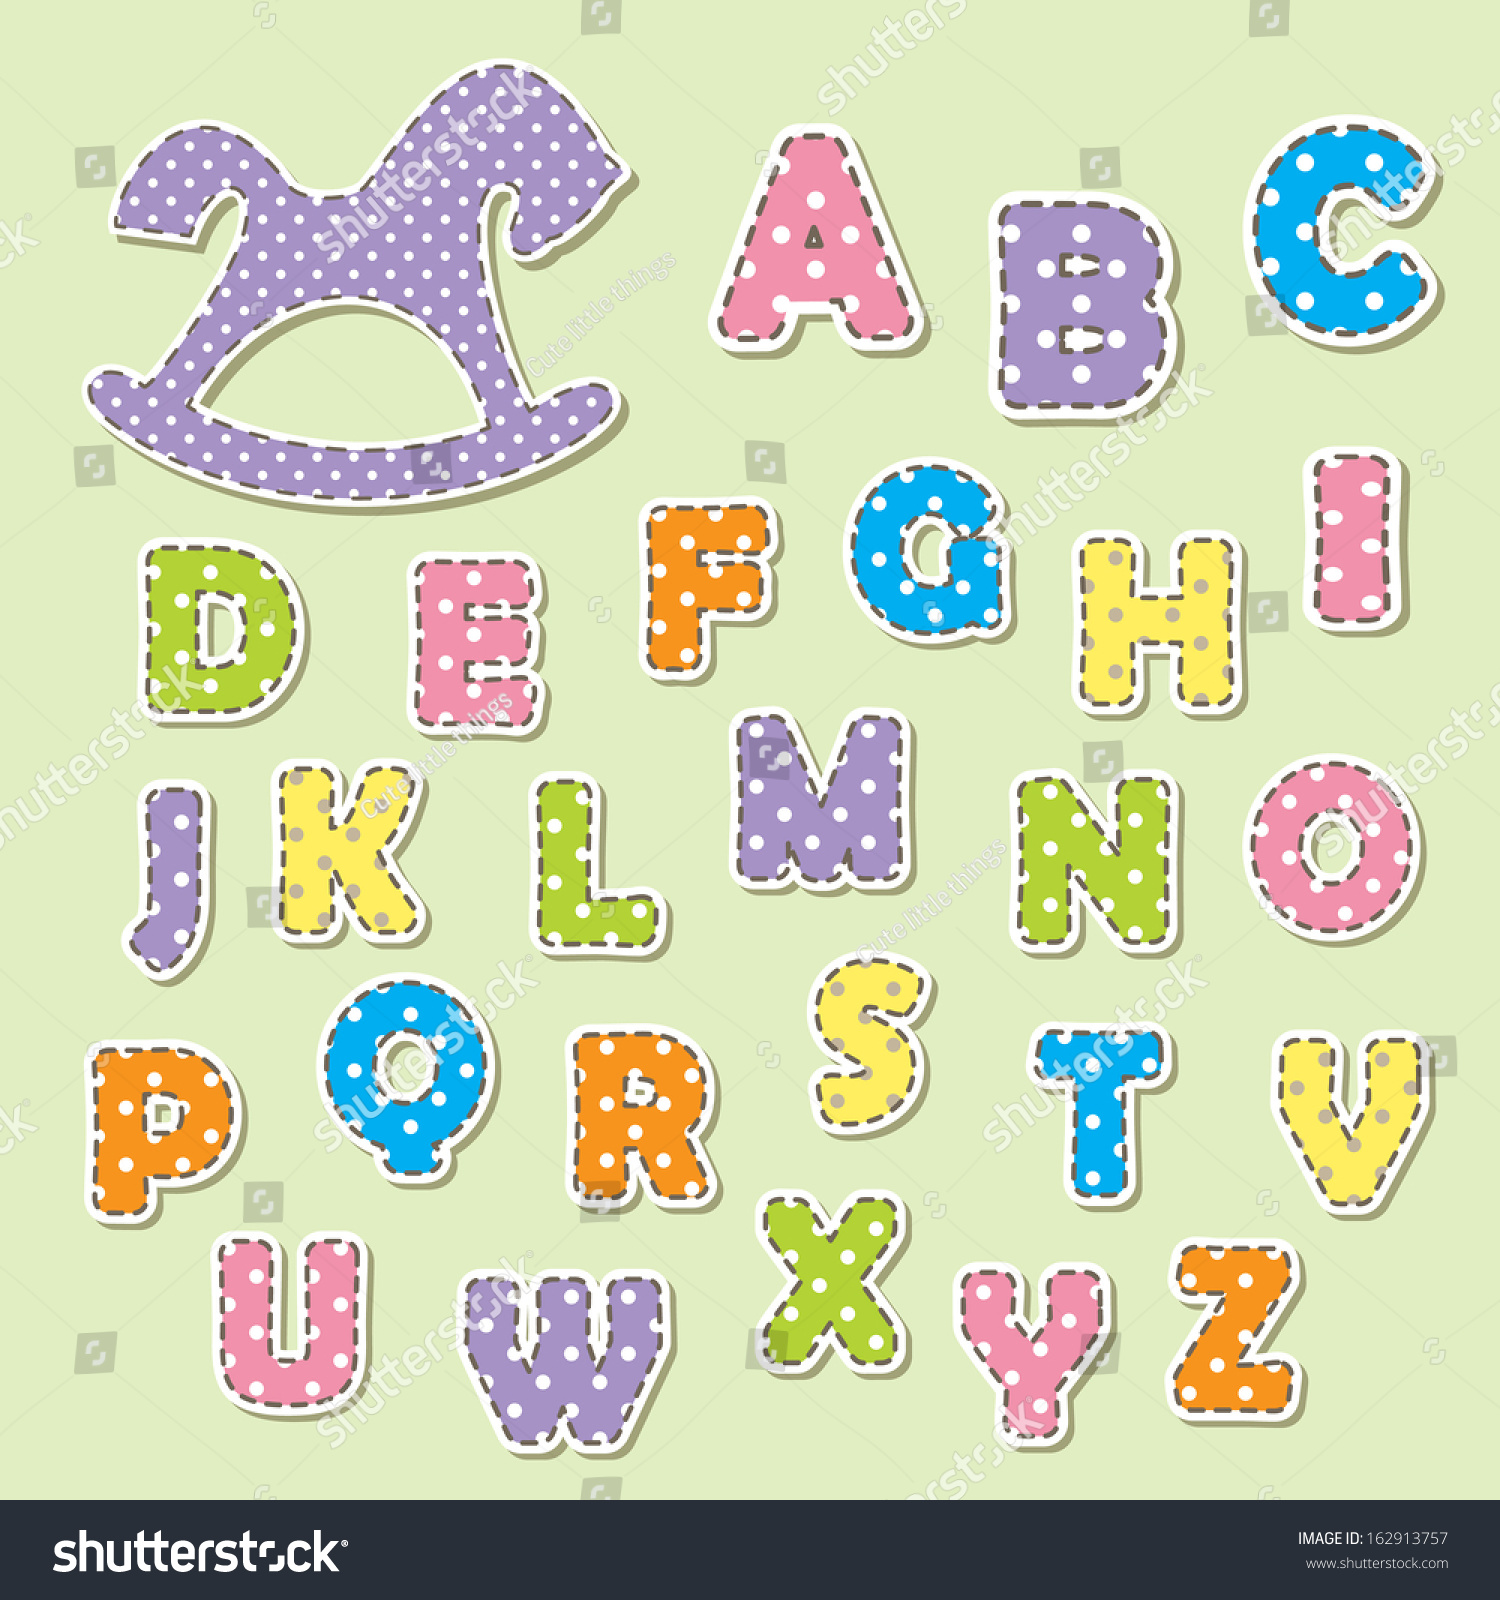 Abc Letters Kids Can Be Used Stock Vector Royalty Free 162913757